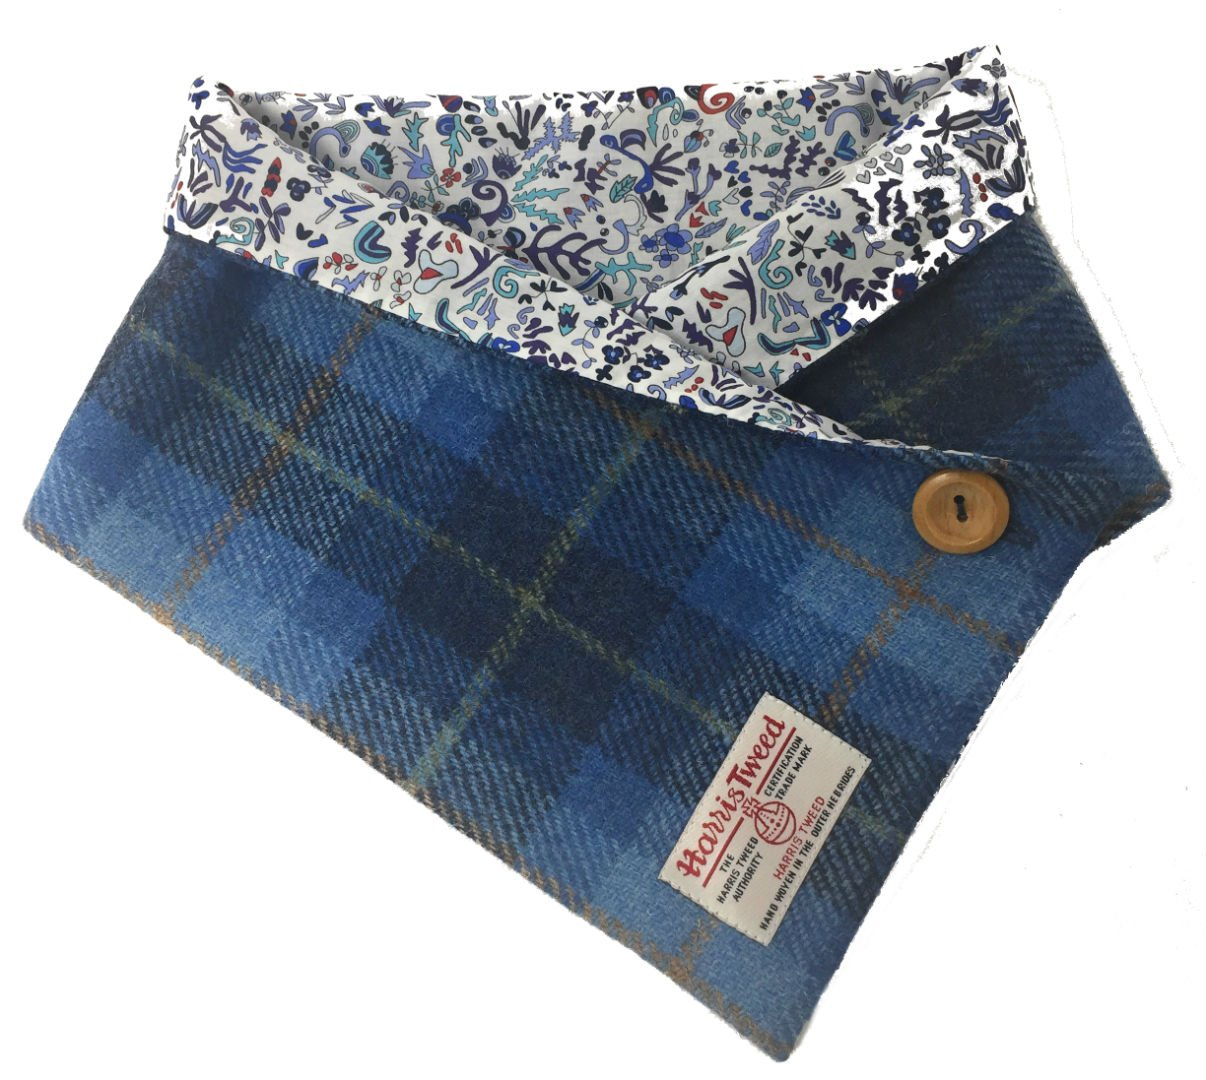 Harris Tweed Cowl Neck Warmer with Luxury Liberty Cotton Lining (Blue) by Scott and MacKenzie